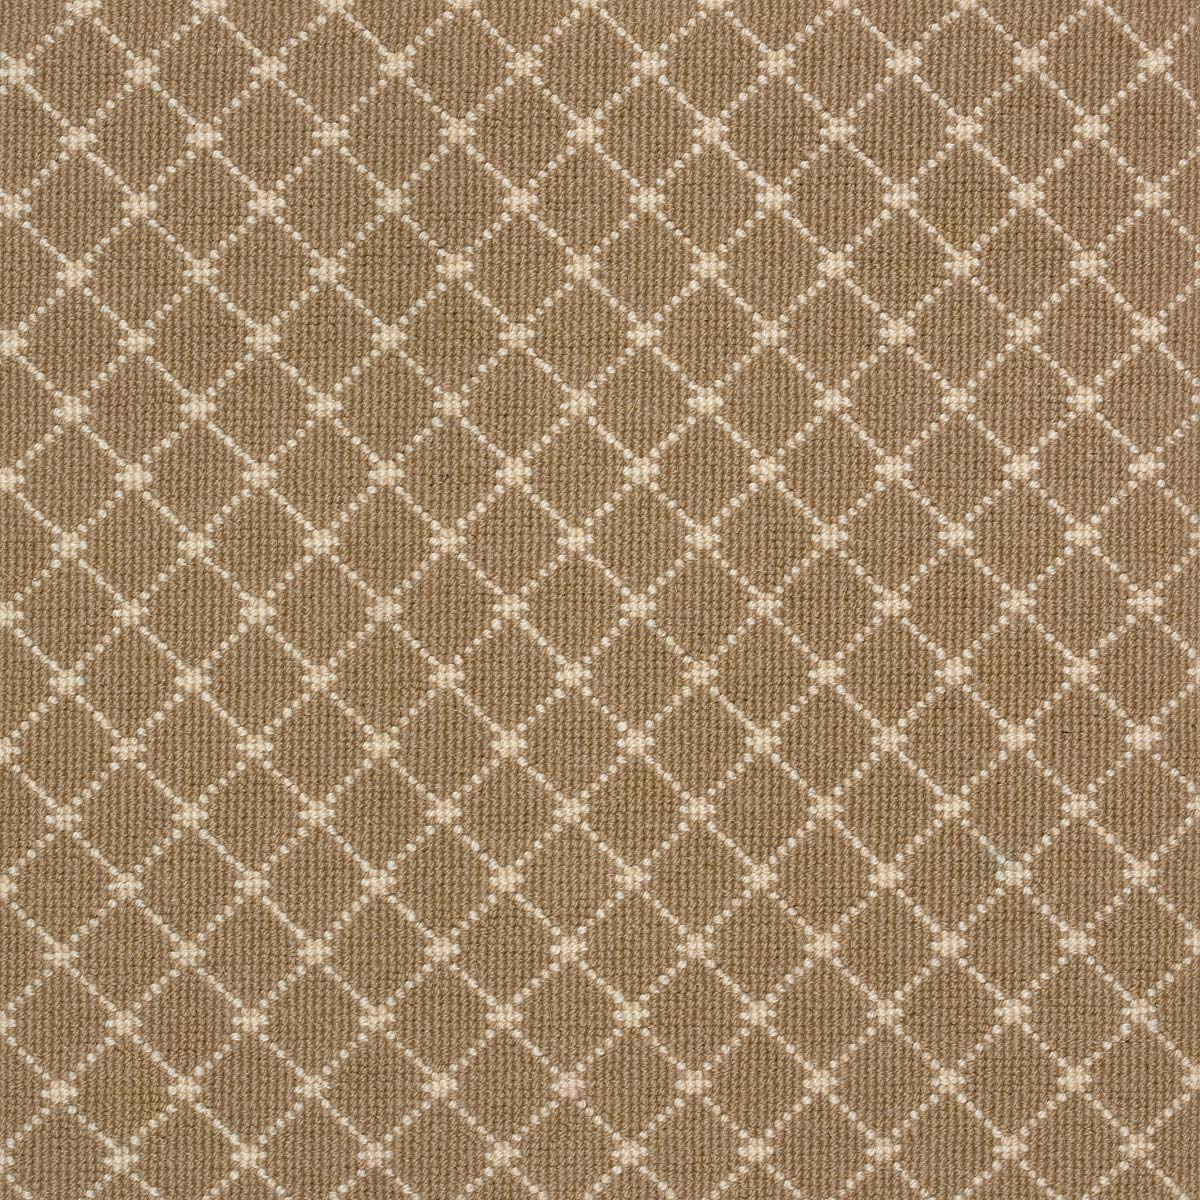 Canoe Loop Pile Carpets Collection Tim Page